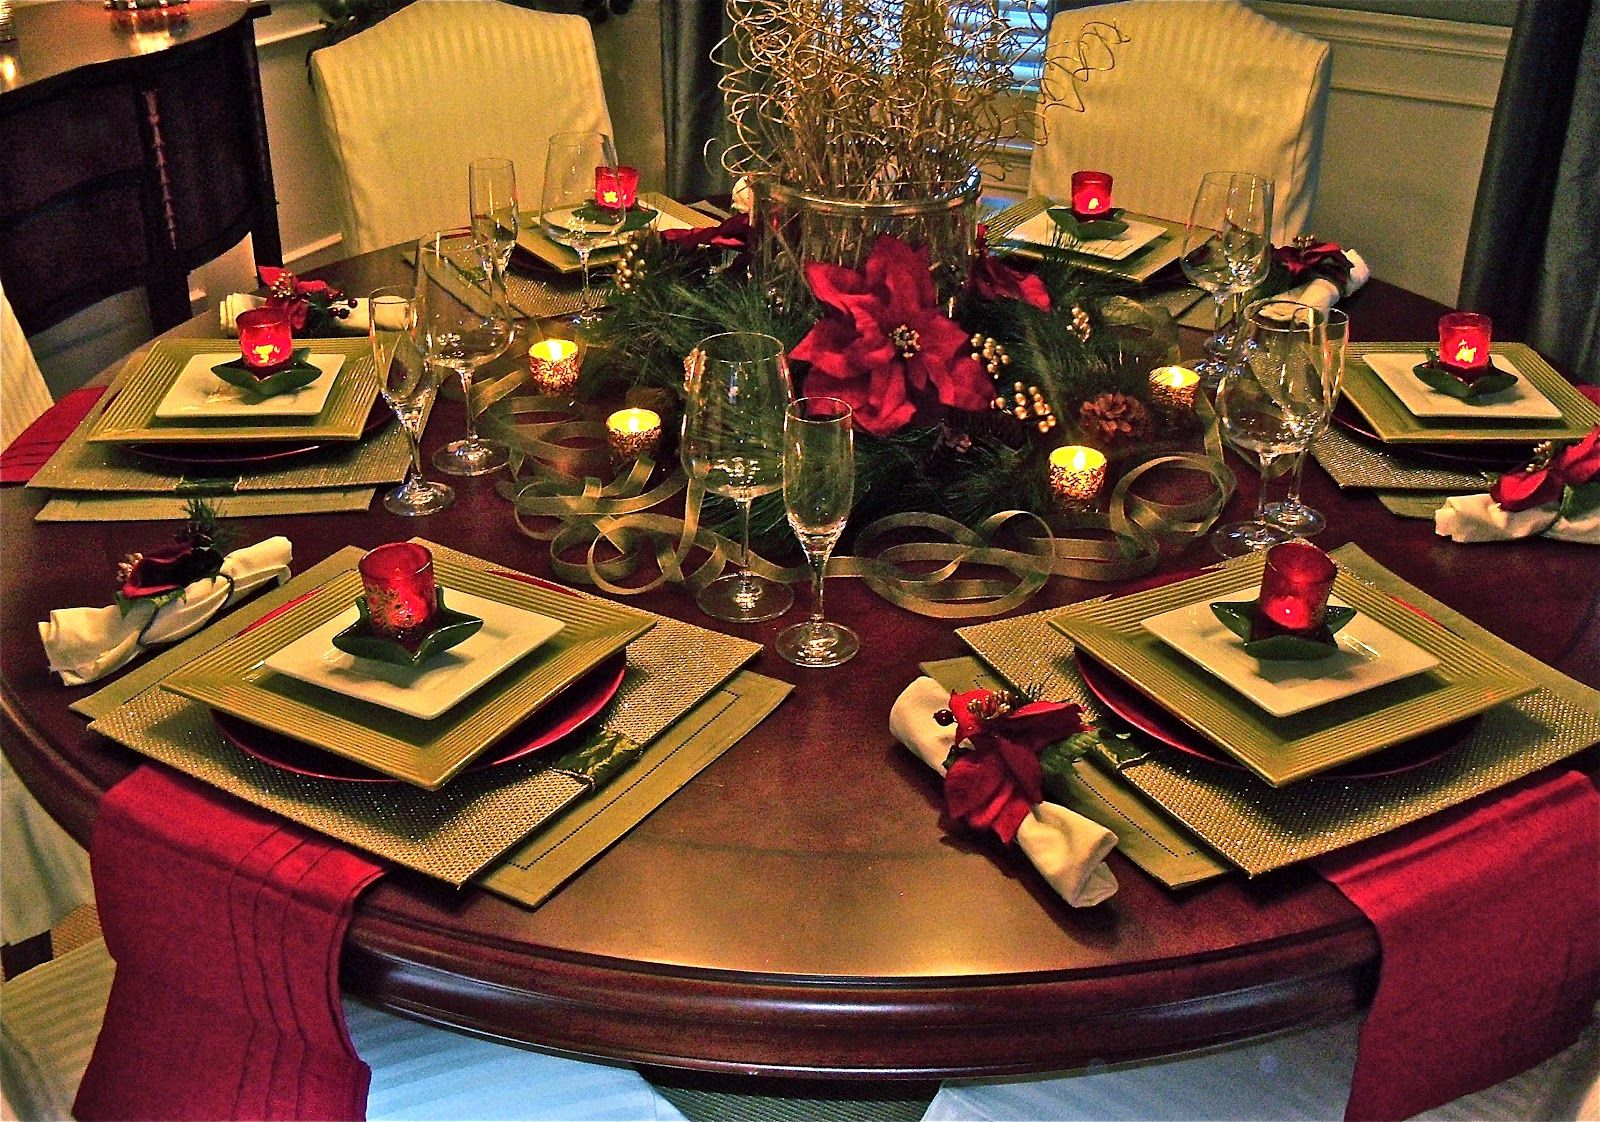 Recognition Holiday Table Settings Christmas Table Decorations Christmas Table